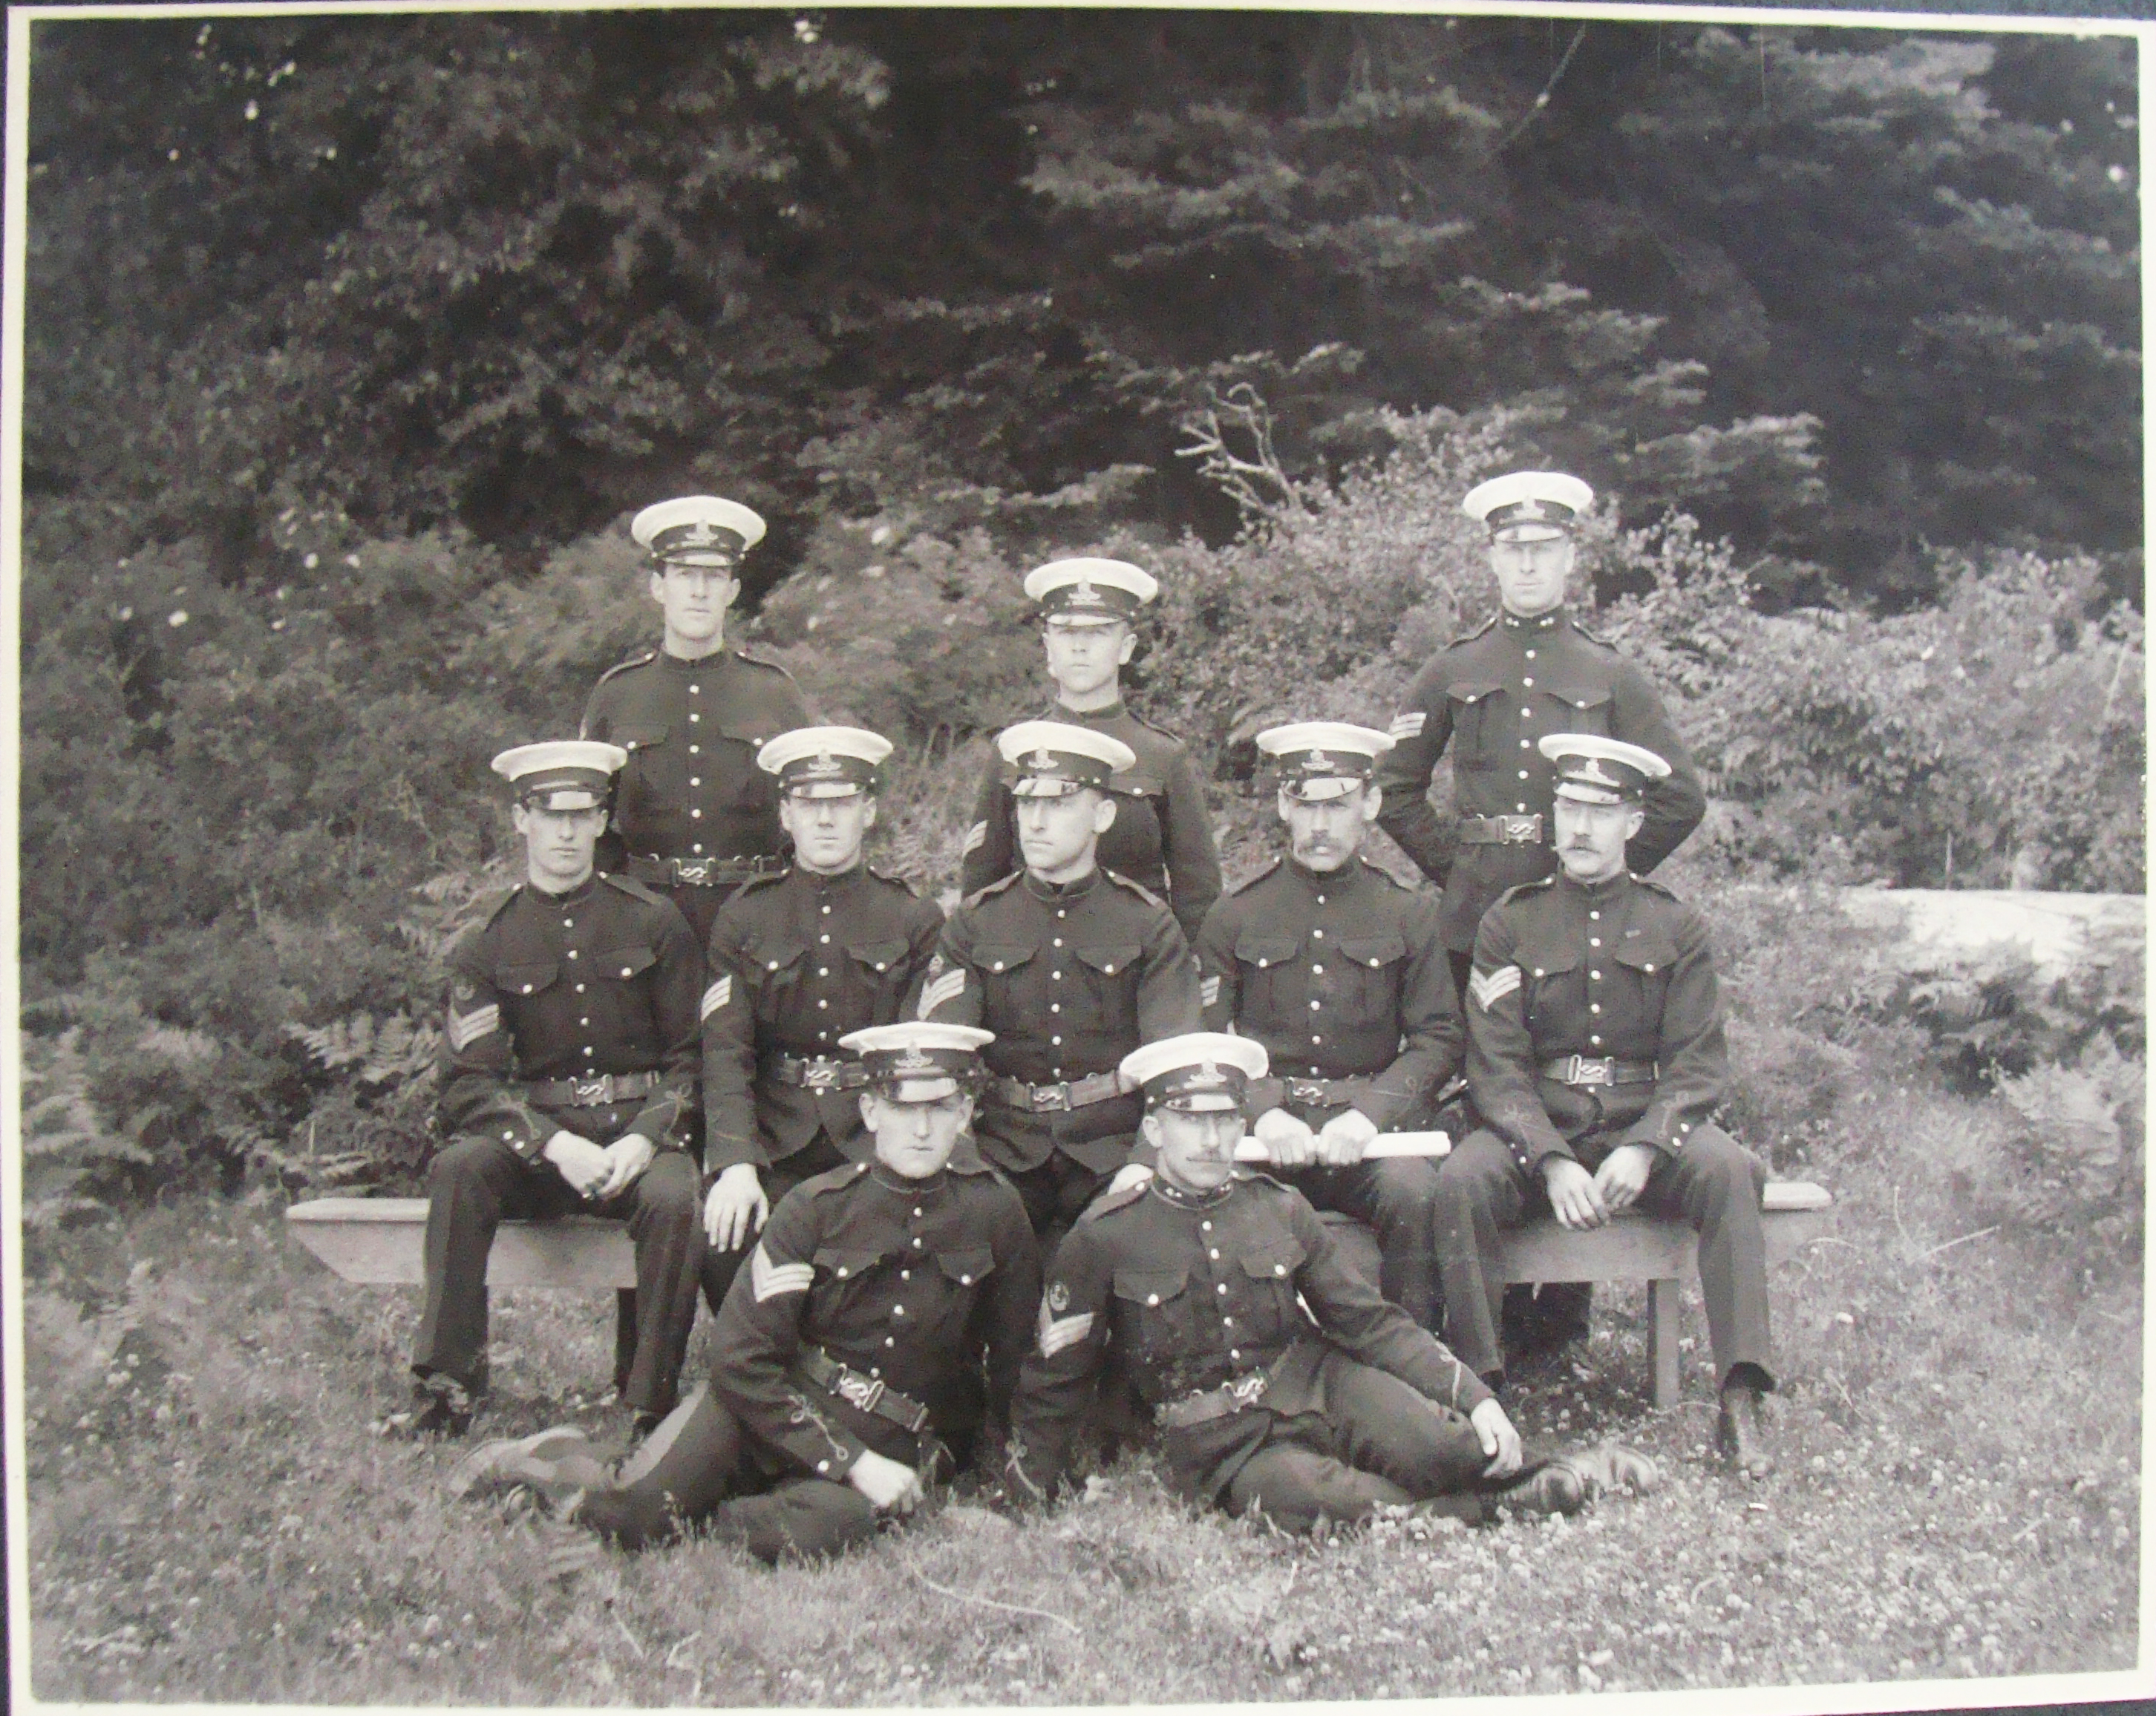 NCOs of the 5th Regiment